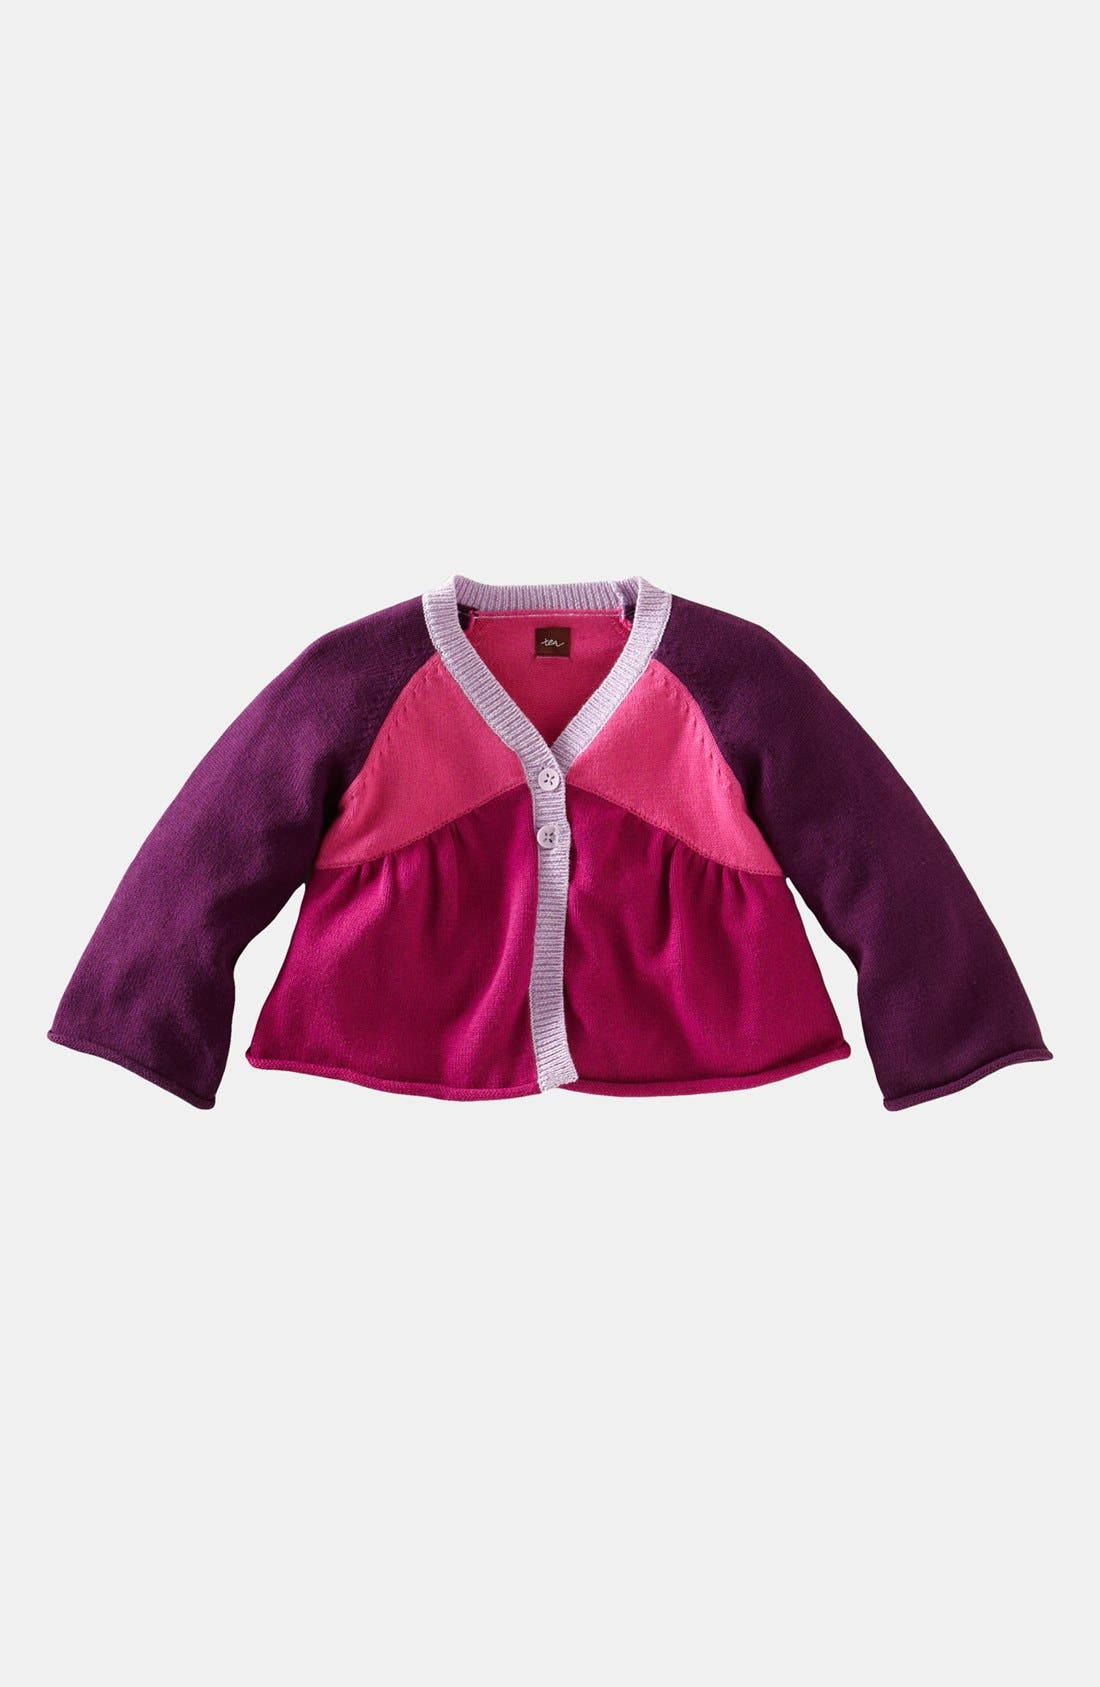 Alternate Image 1 Selected - Tea Collection Colorblock Cardigan (Toddler Girls)